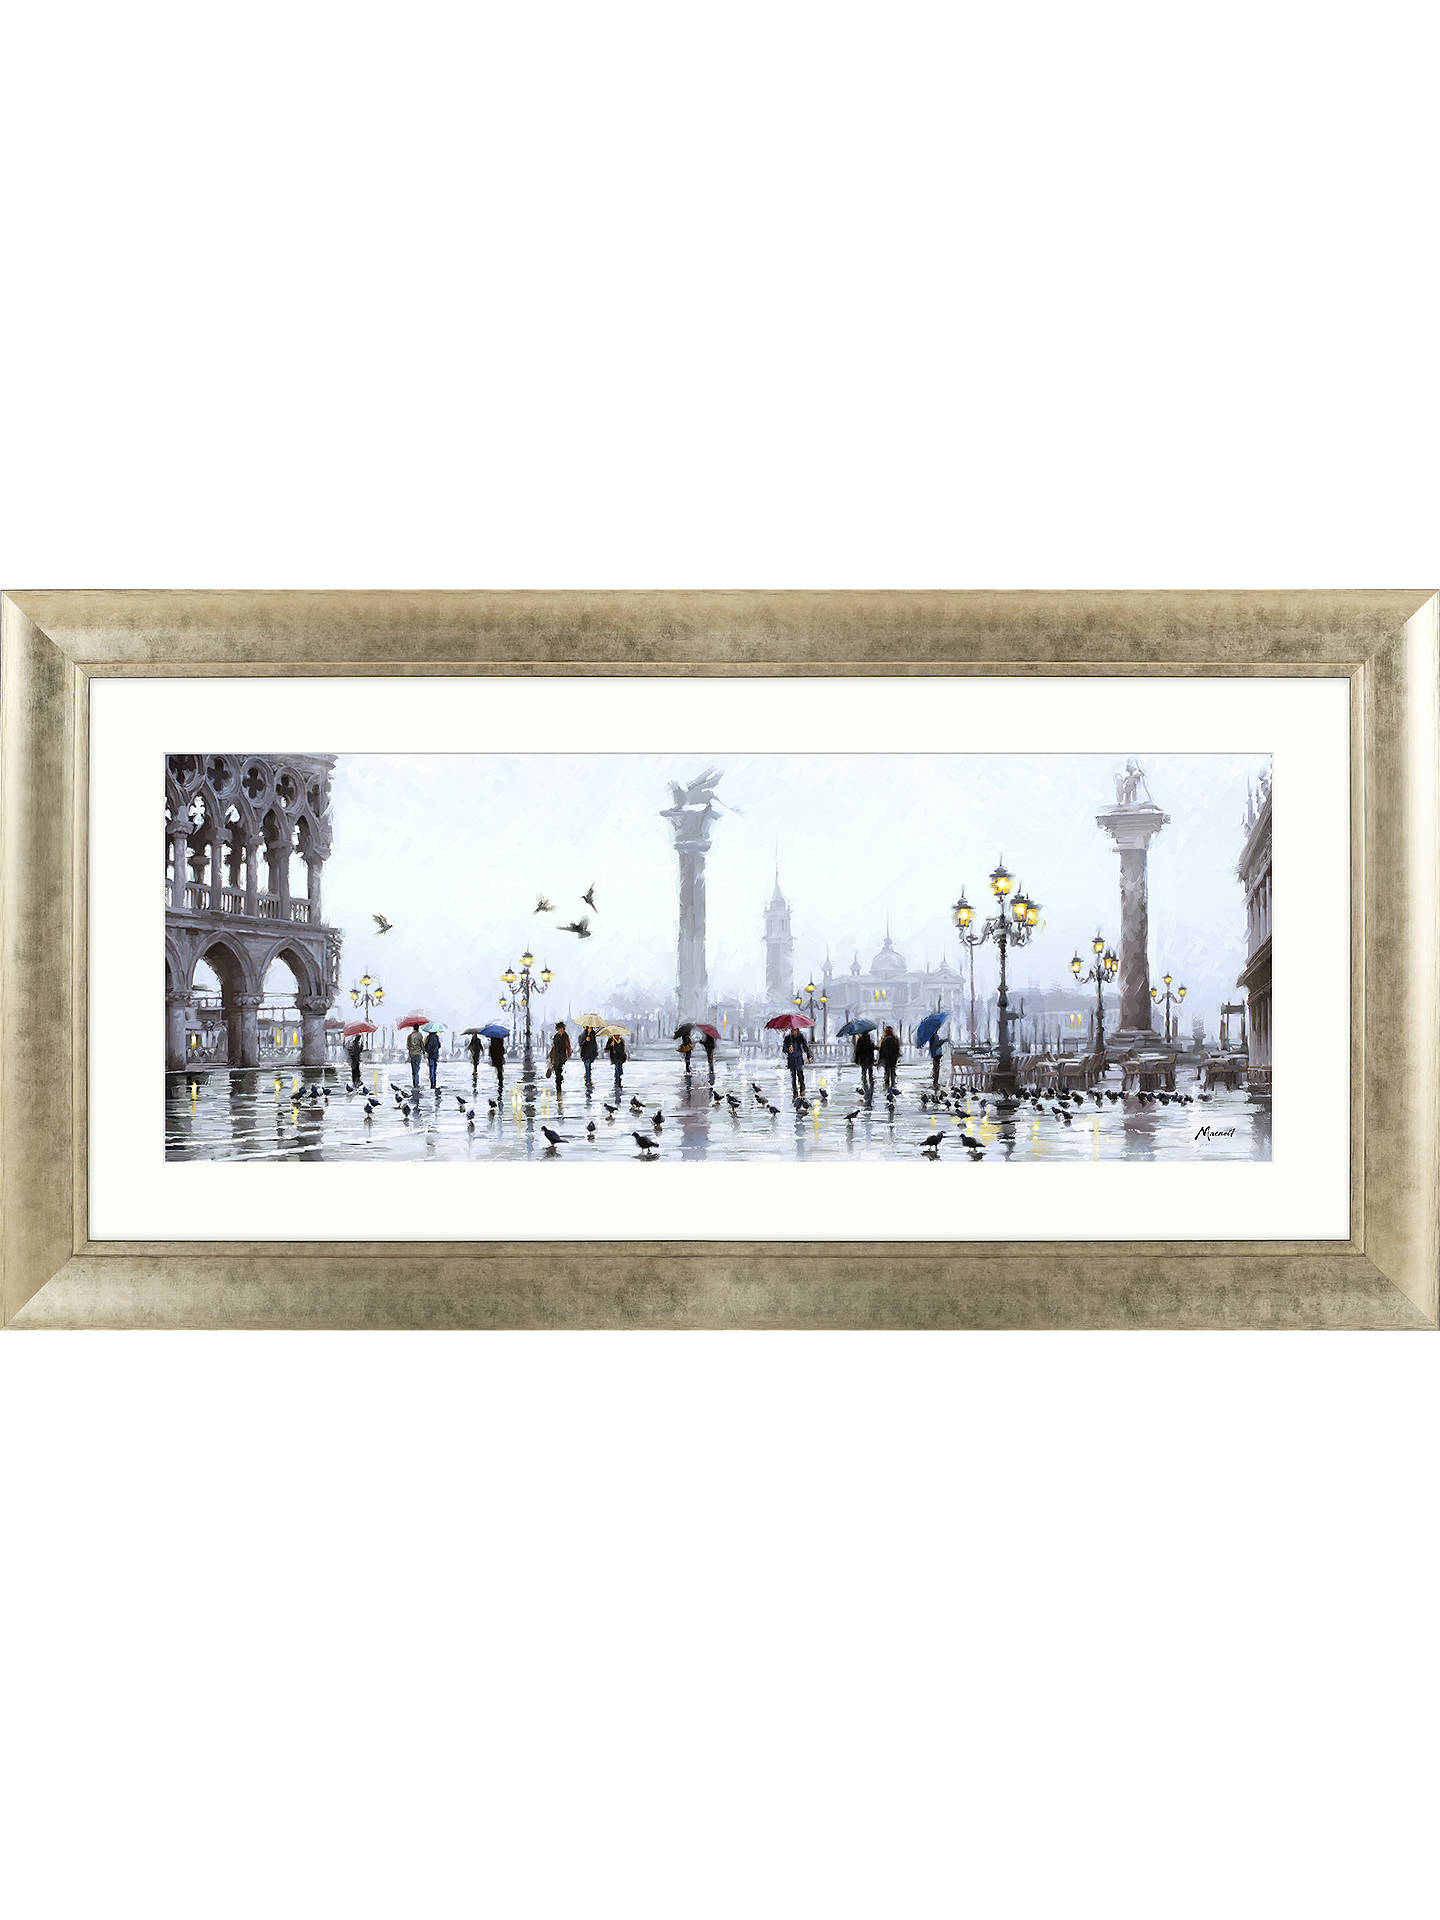 BuyRichard Macneil - San Marco Reflection Framed Print & Mount, 62 x 128cm Online at johnlewis.com